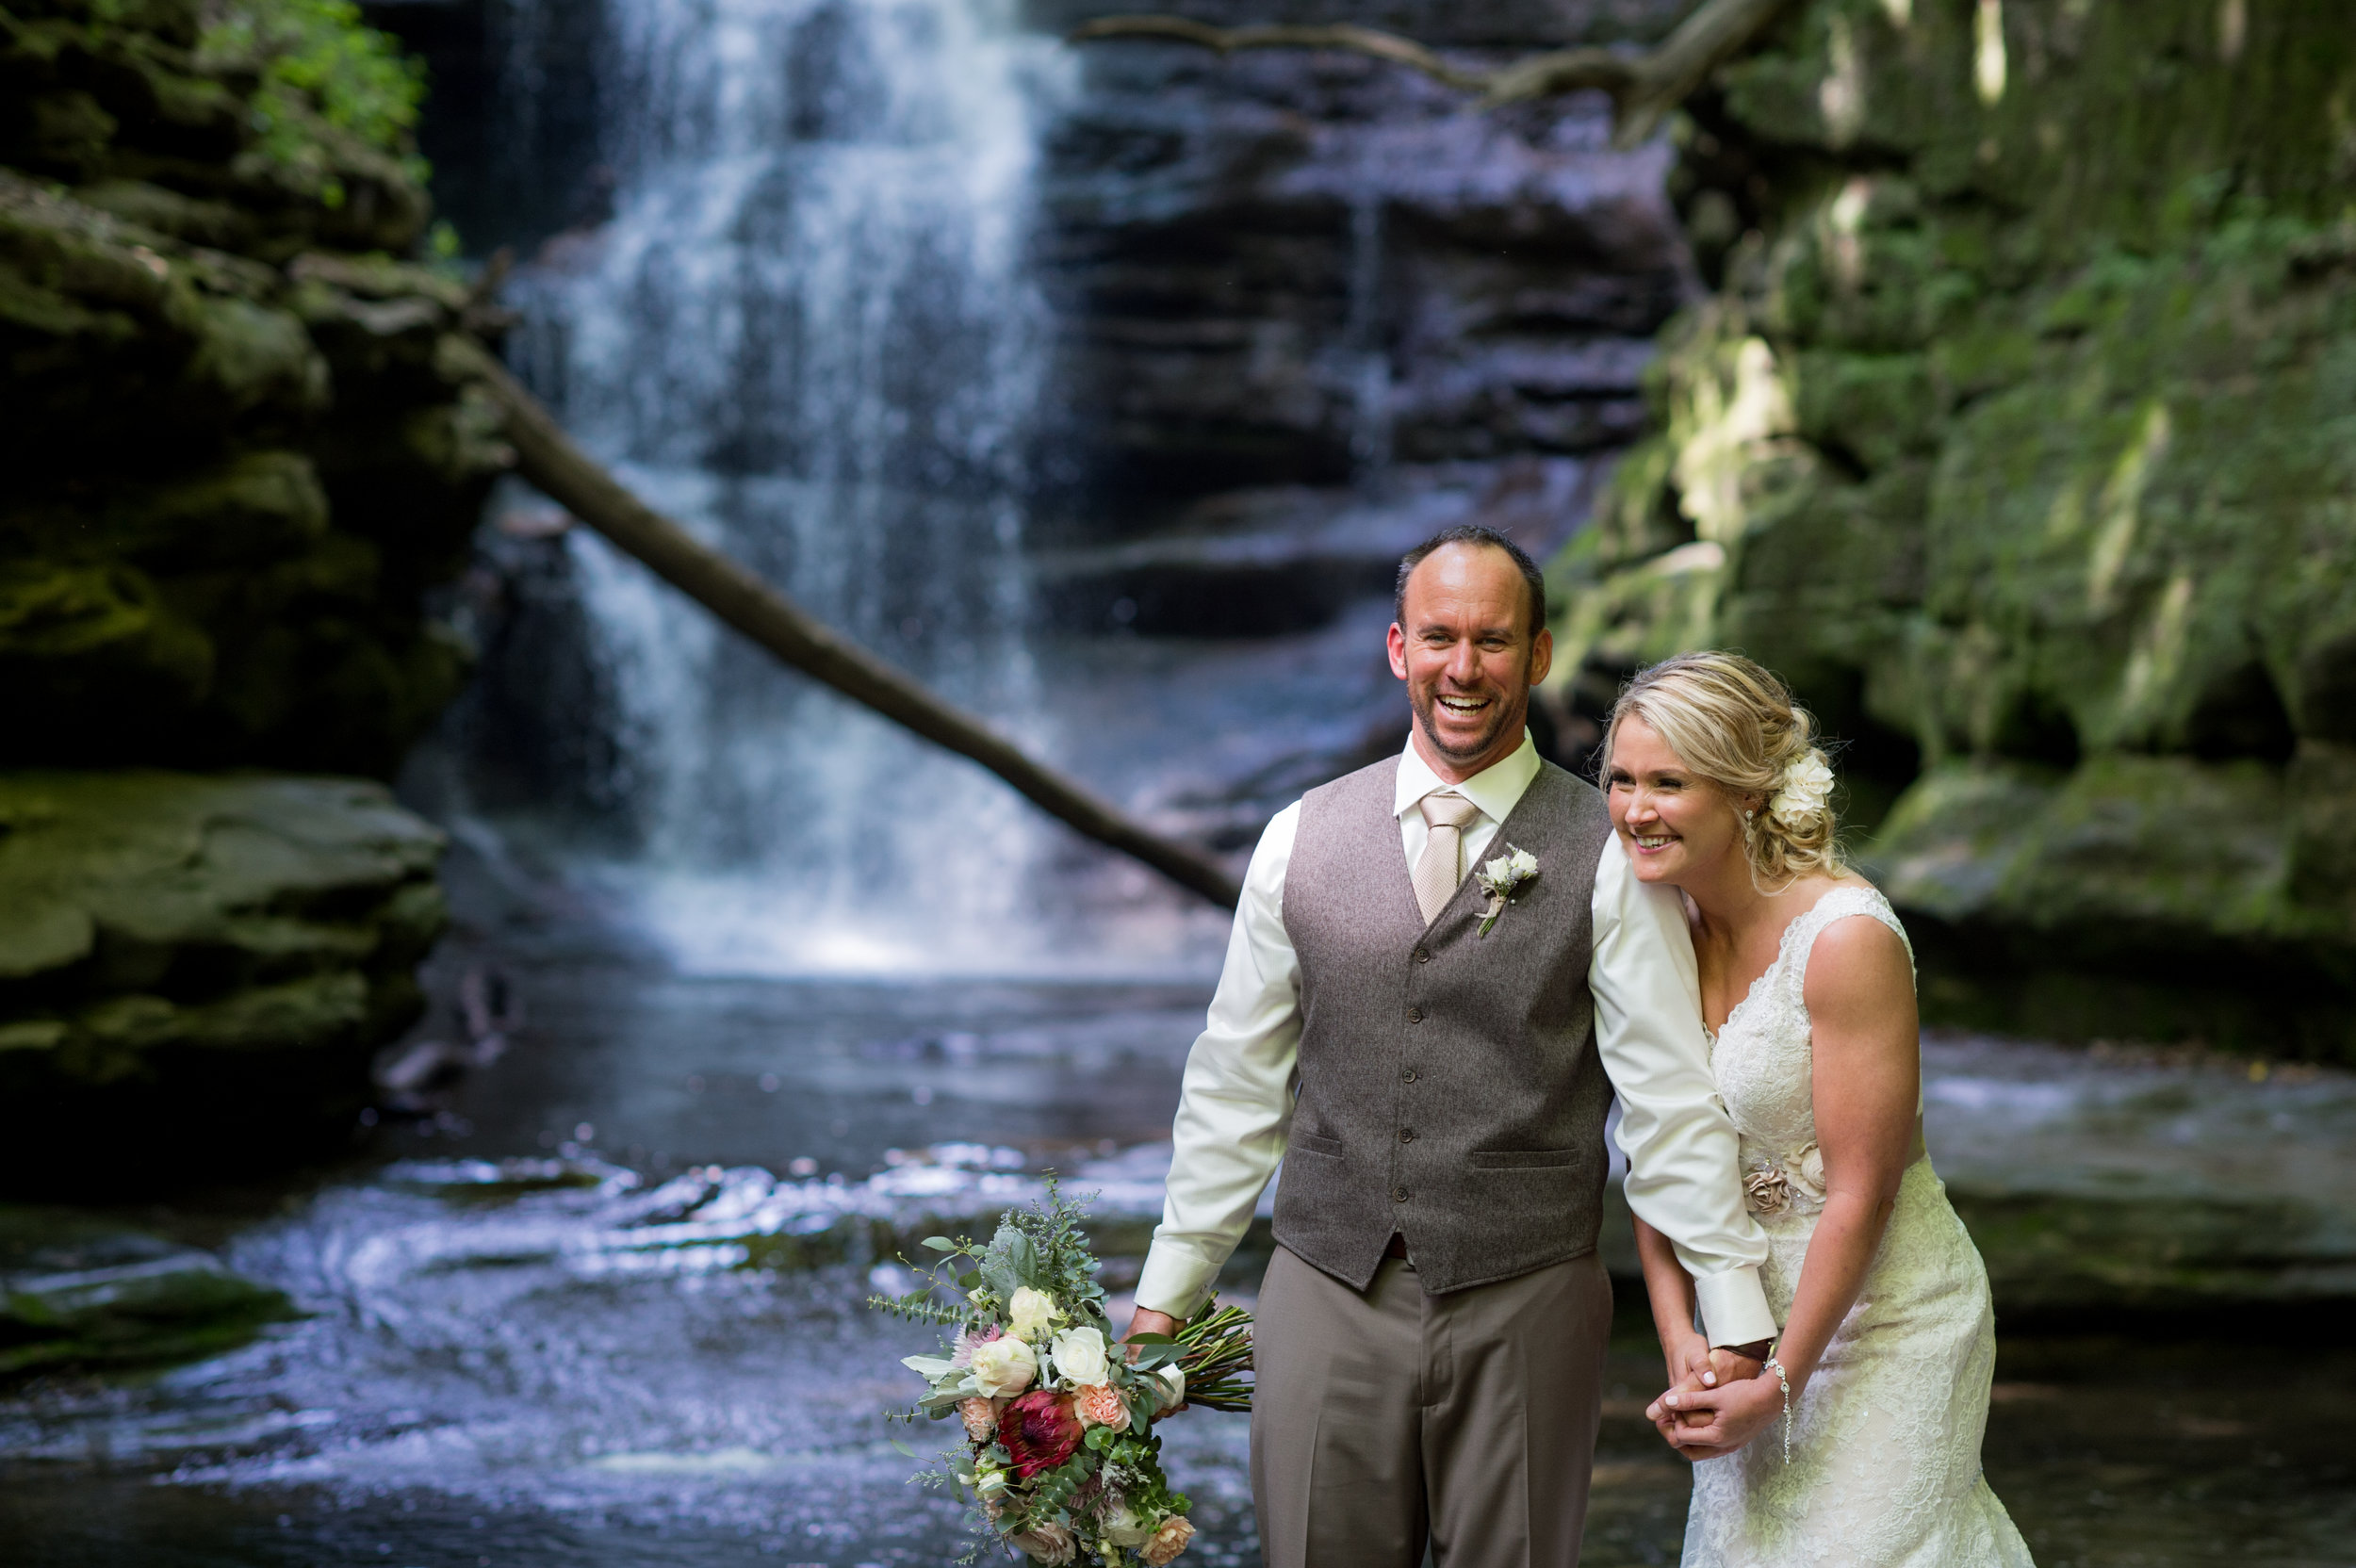 starvedrockwaterfallwedding-3.jpg